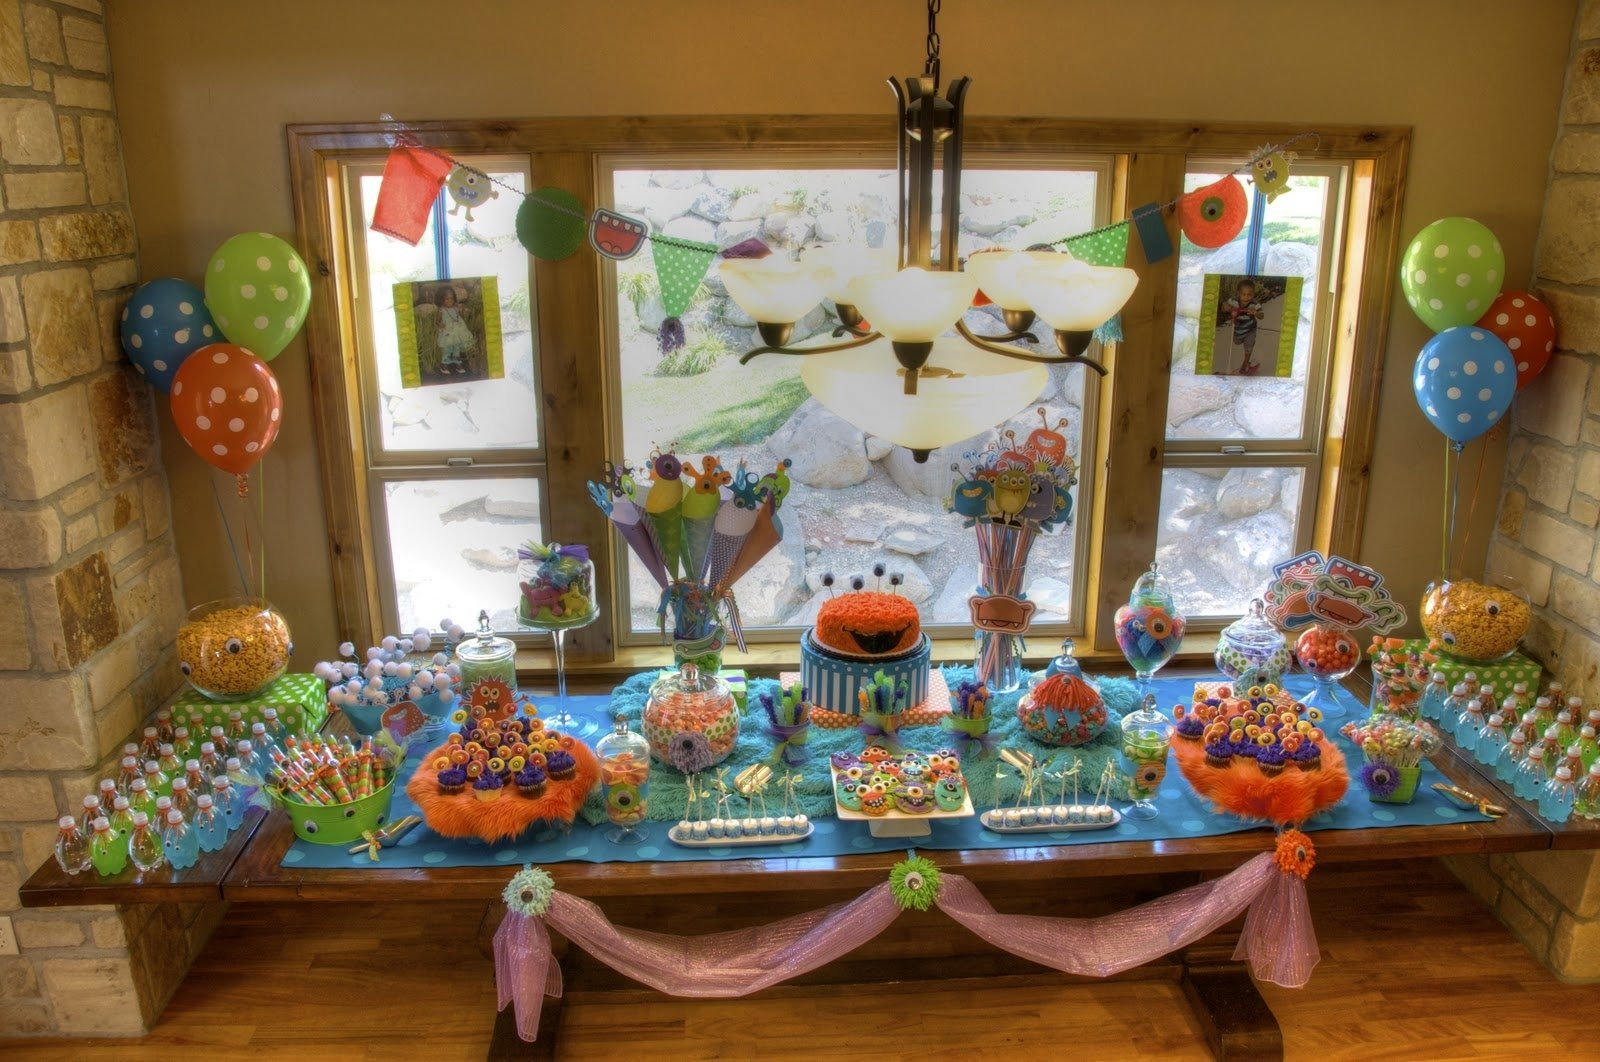 10 Unique 5 Year Old Boy Birthday Party Ideas Cute Entertainment